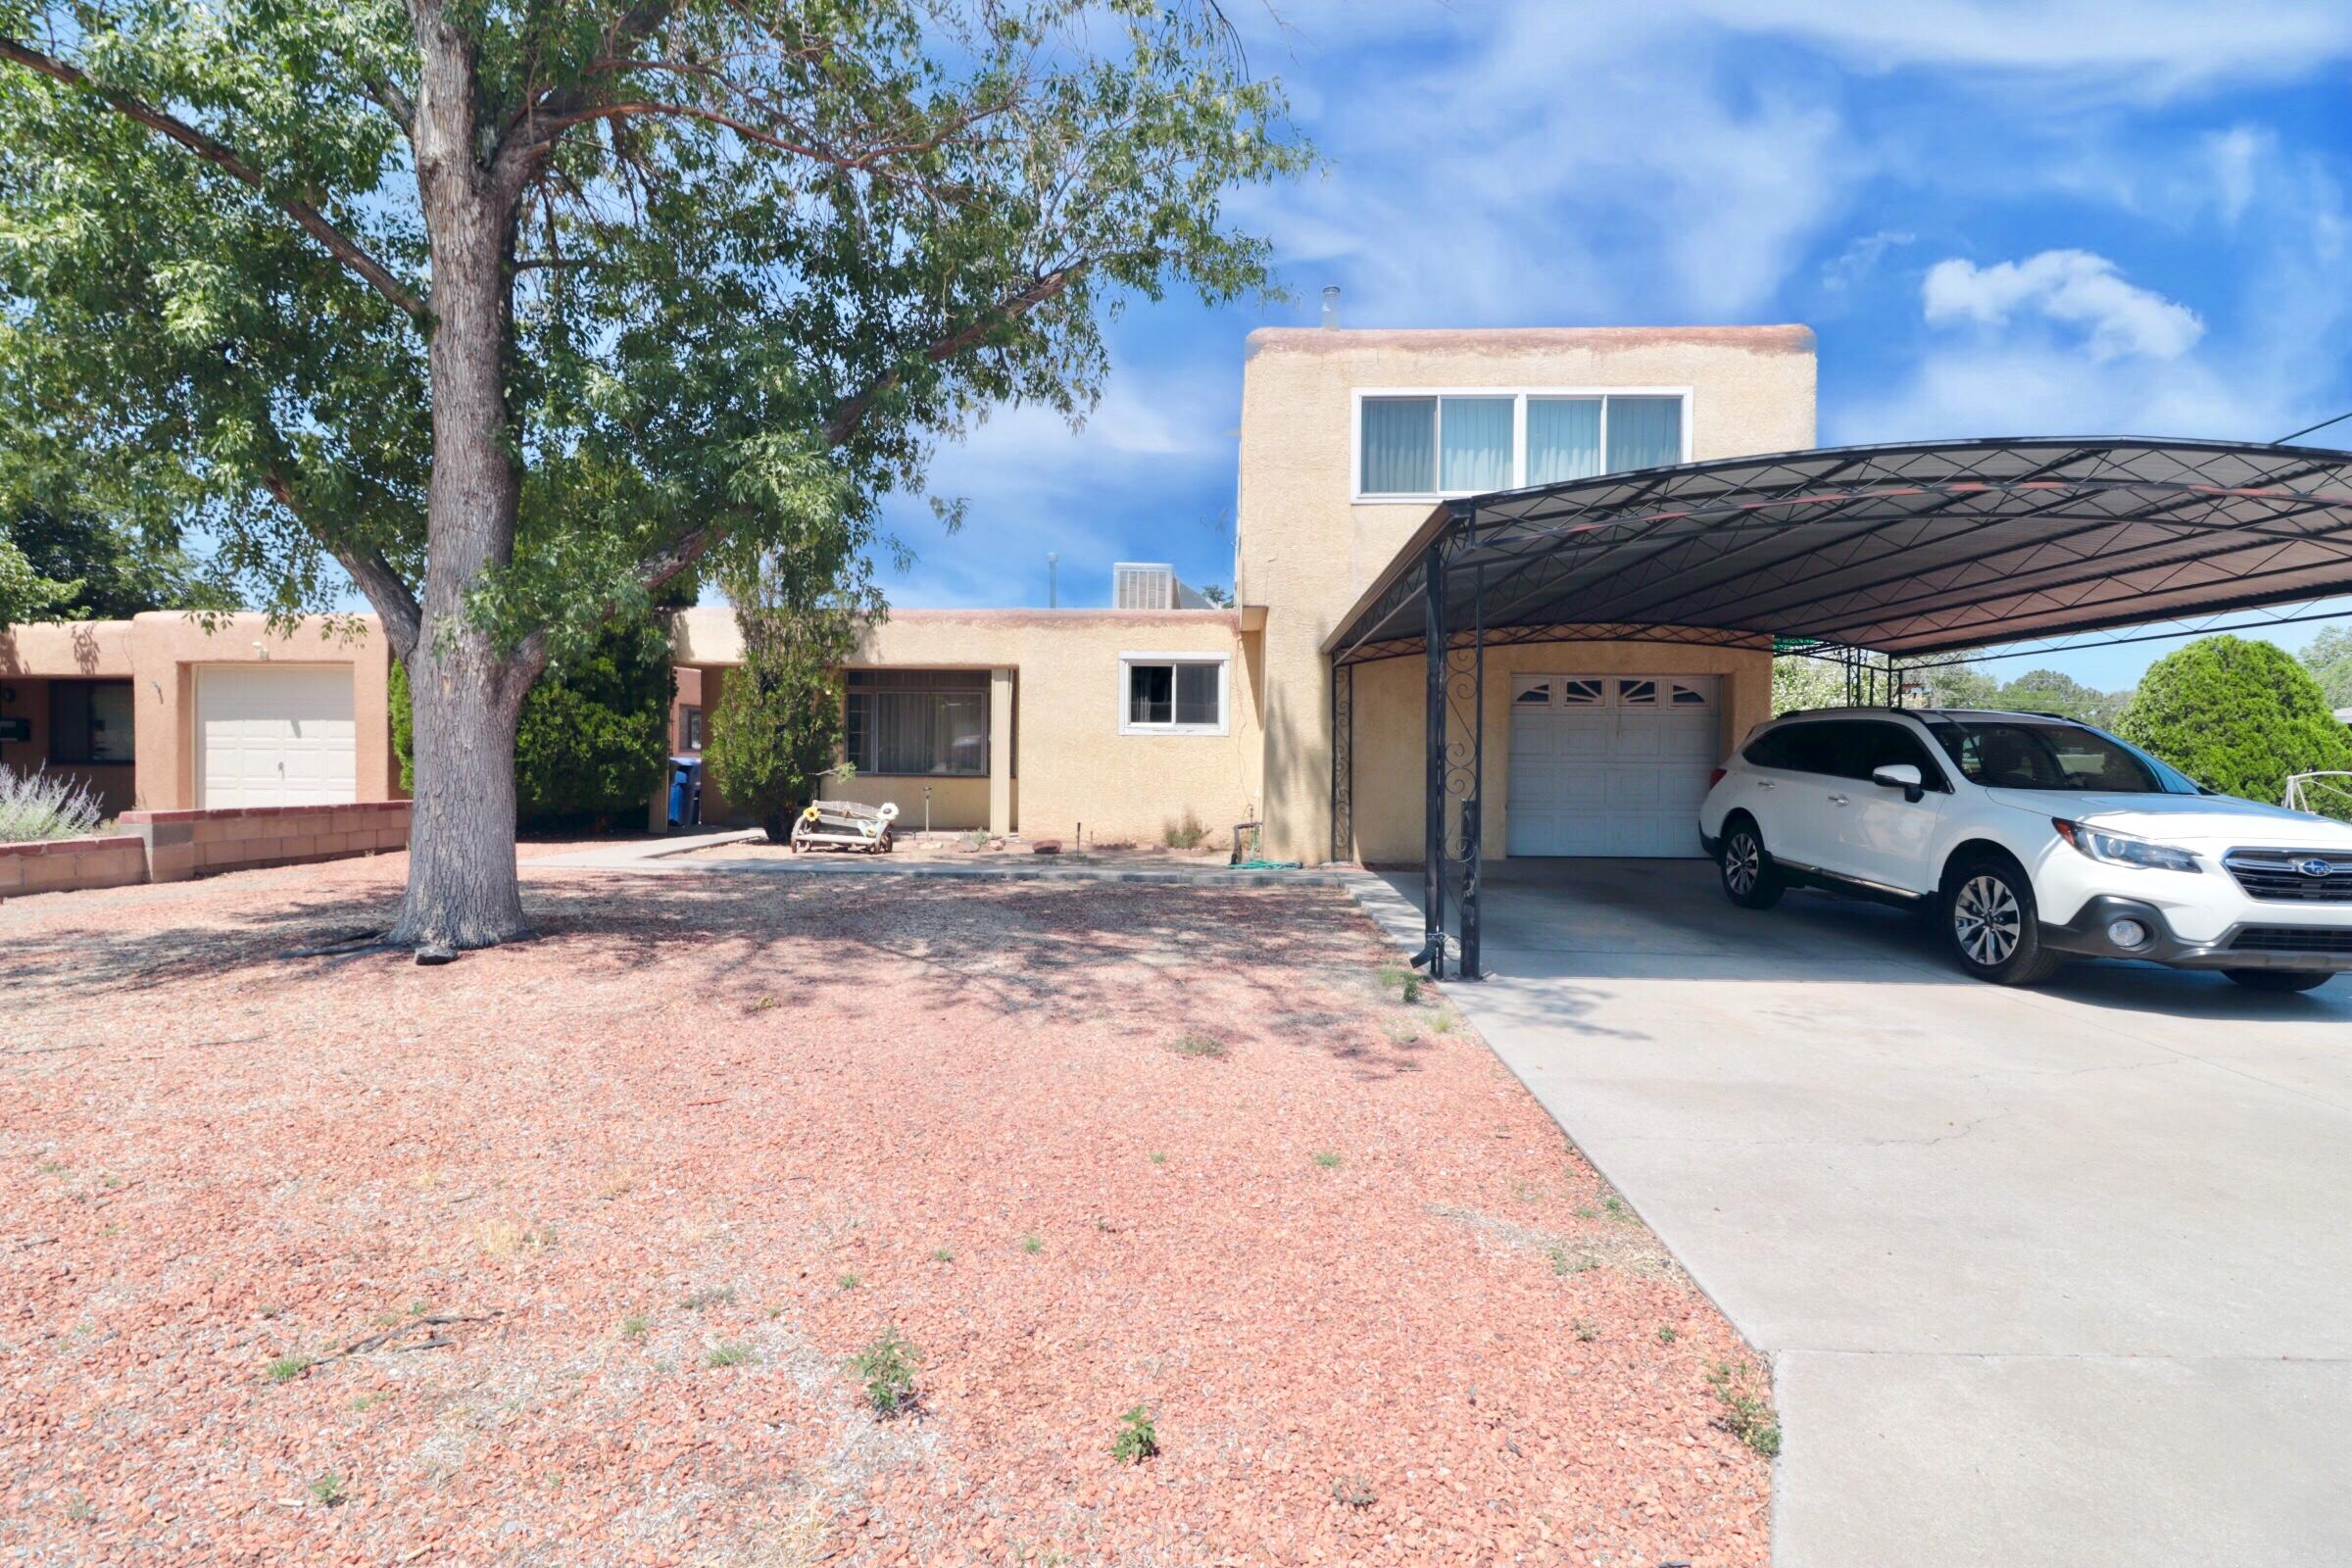 Unique and awesome opportunity!! This is two homes in one, main area is living/kitchen,2 bedrooms and 2 bathrooms all on the main level. Through the utility room you can access the in-law suite which also has a kitchen, 3 bedrooms and two bathrooms, the bedrooms are on the 2nd level. There is a separate entrance on the North side of the property(facing Roma) for the in-law area. Attached 1-car garage and an additional detached high bay garage with a ''mechanic-pit'' for enthusiasts and the garage might be big enough to house an RV.